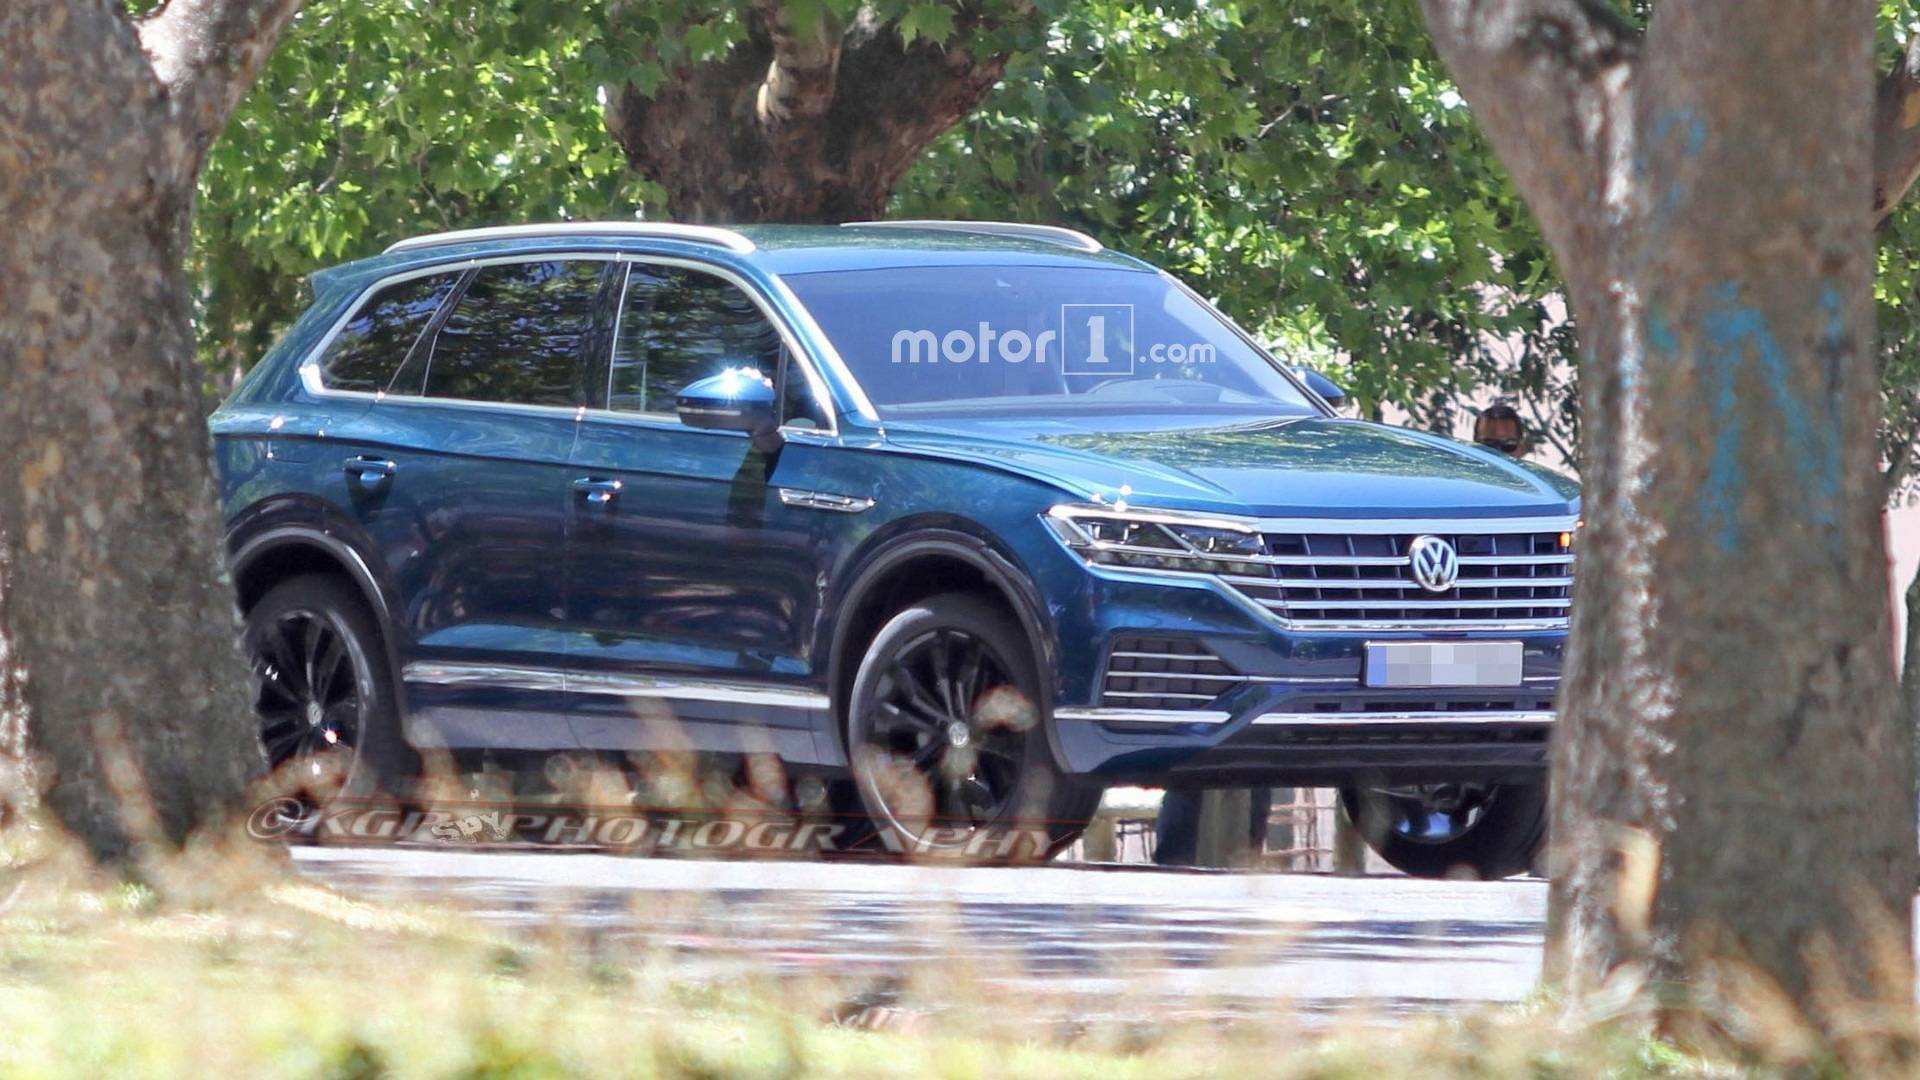 84 Great The Volkswagen Touareg 2019 India Release Date Overview by The Volkswagen Touareg 2019 India Release Date